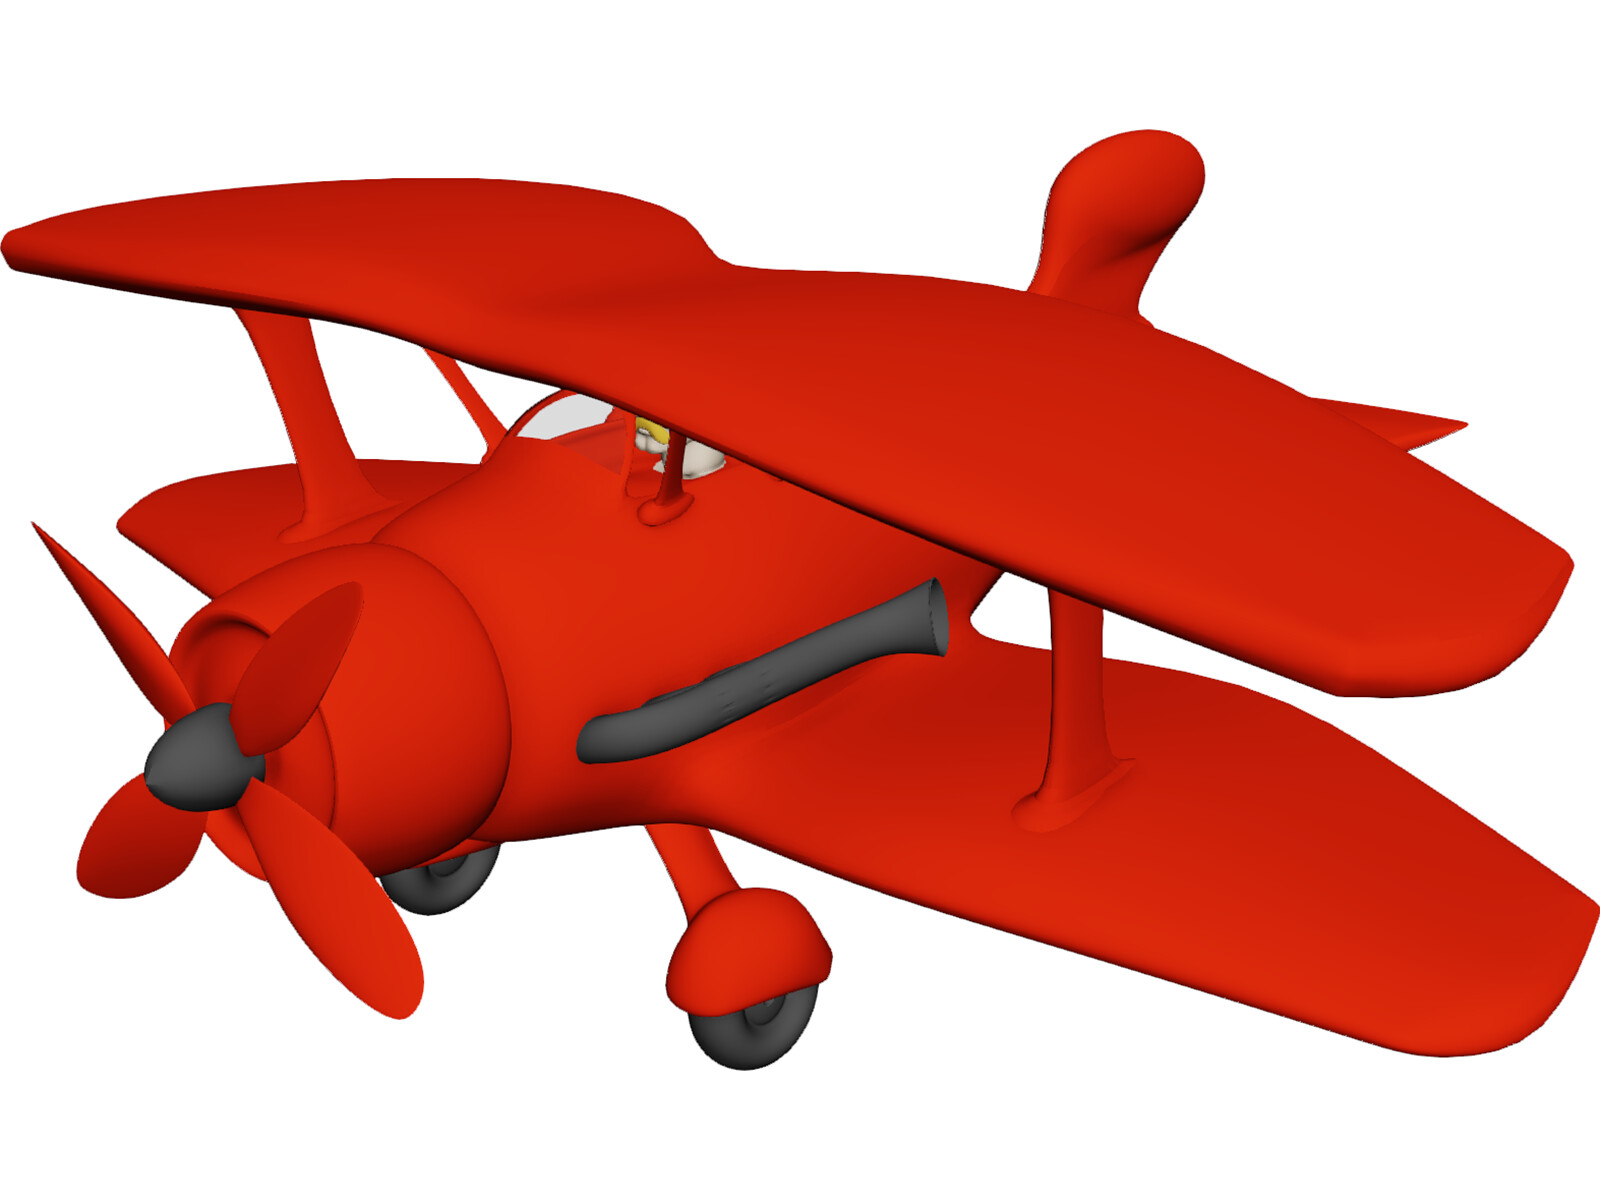 Toy Airplane Free 3D Model - 3D CAD Browser